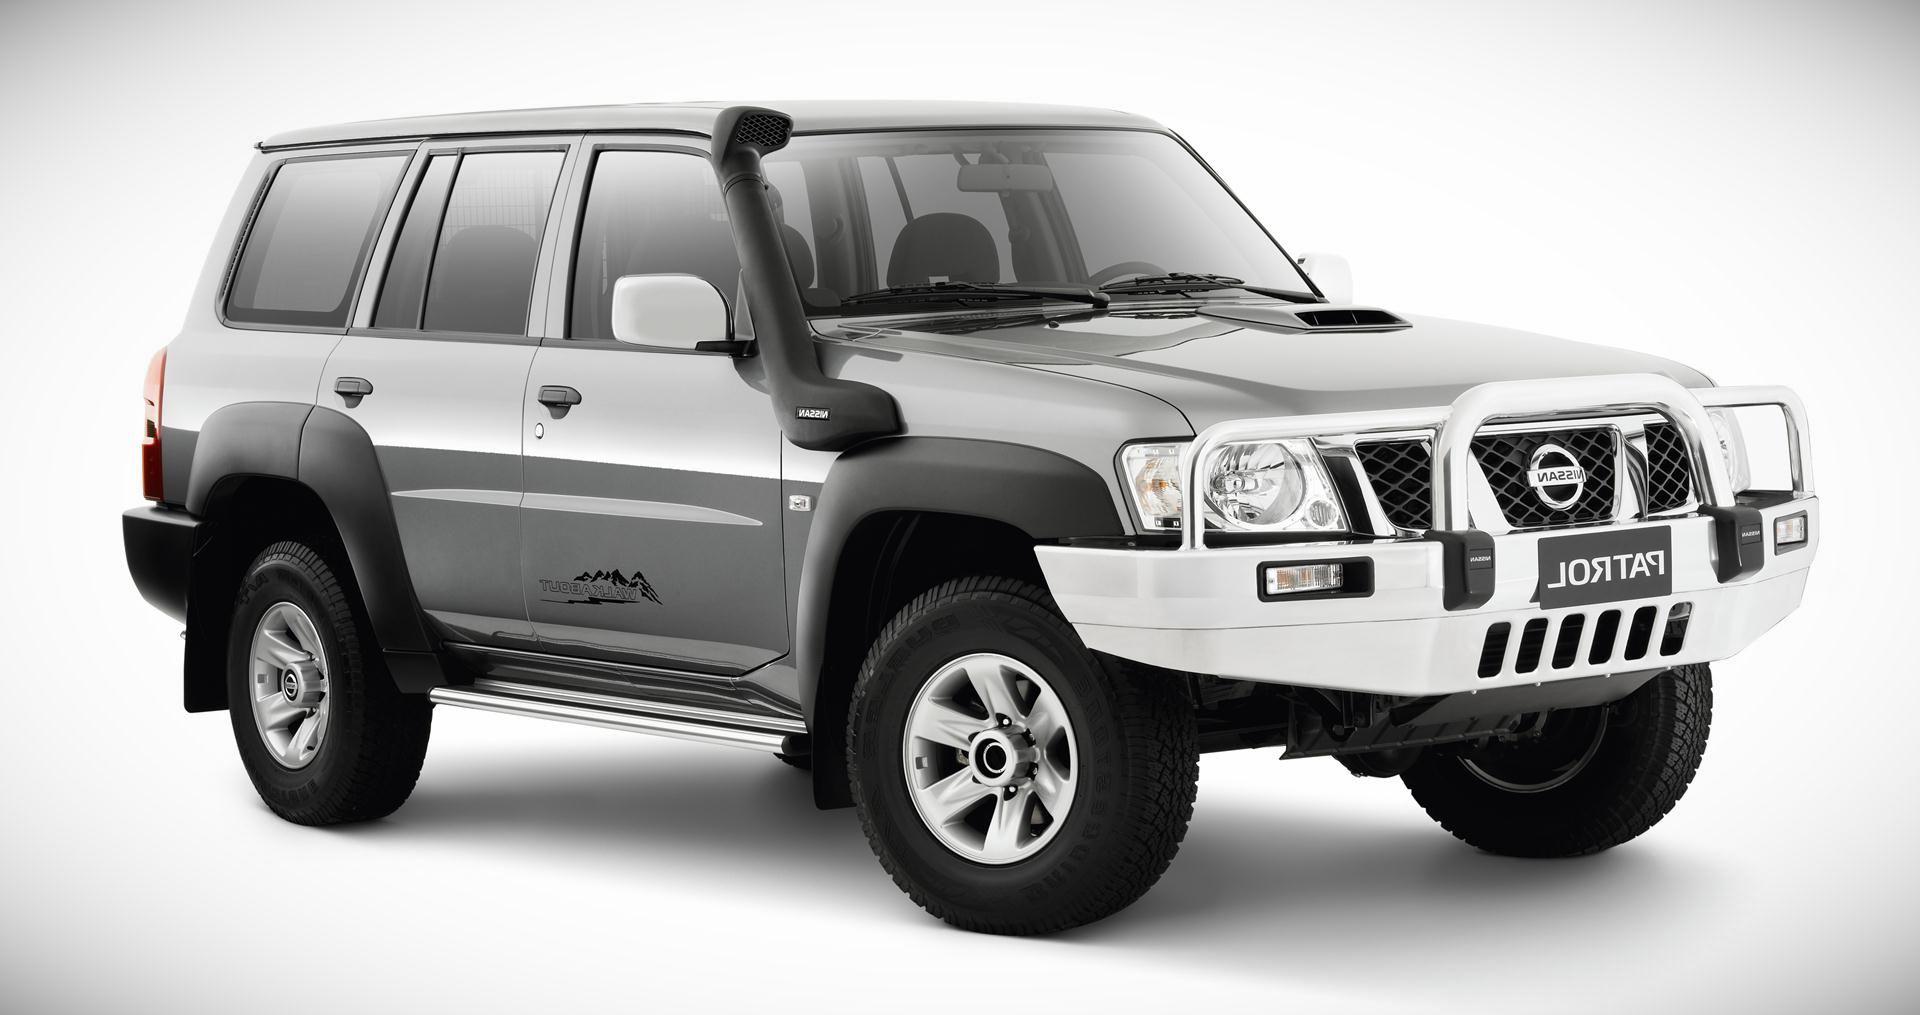 2018 Nissan Patrol suv diesel photo - New SUV Price